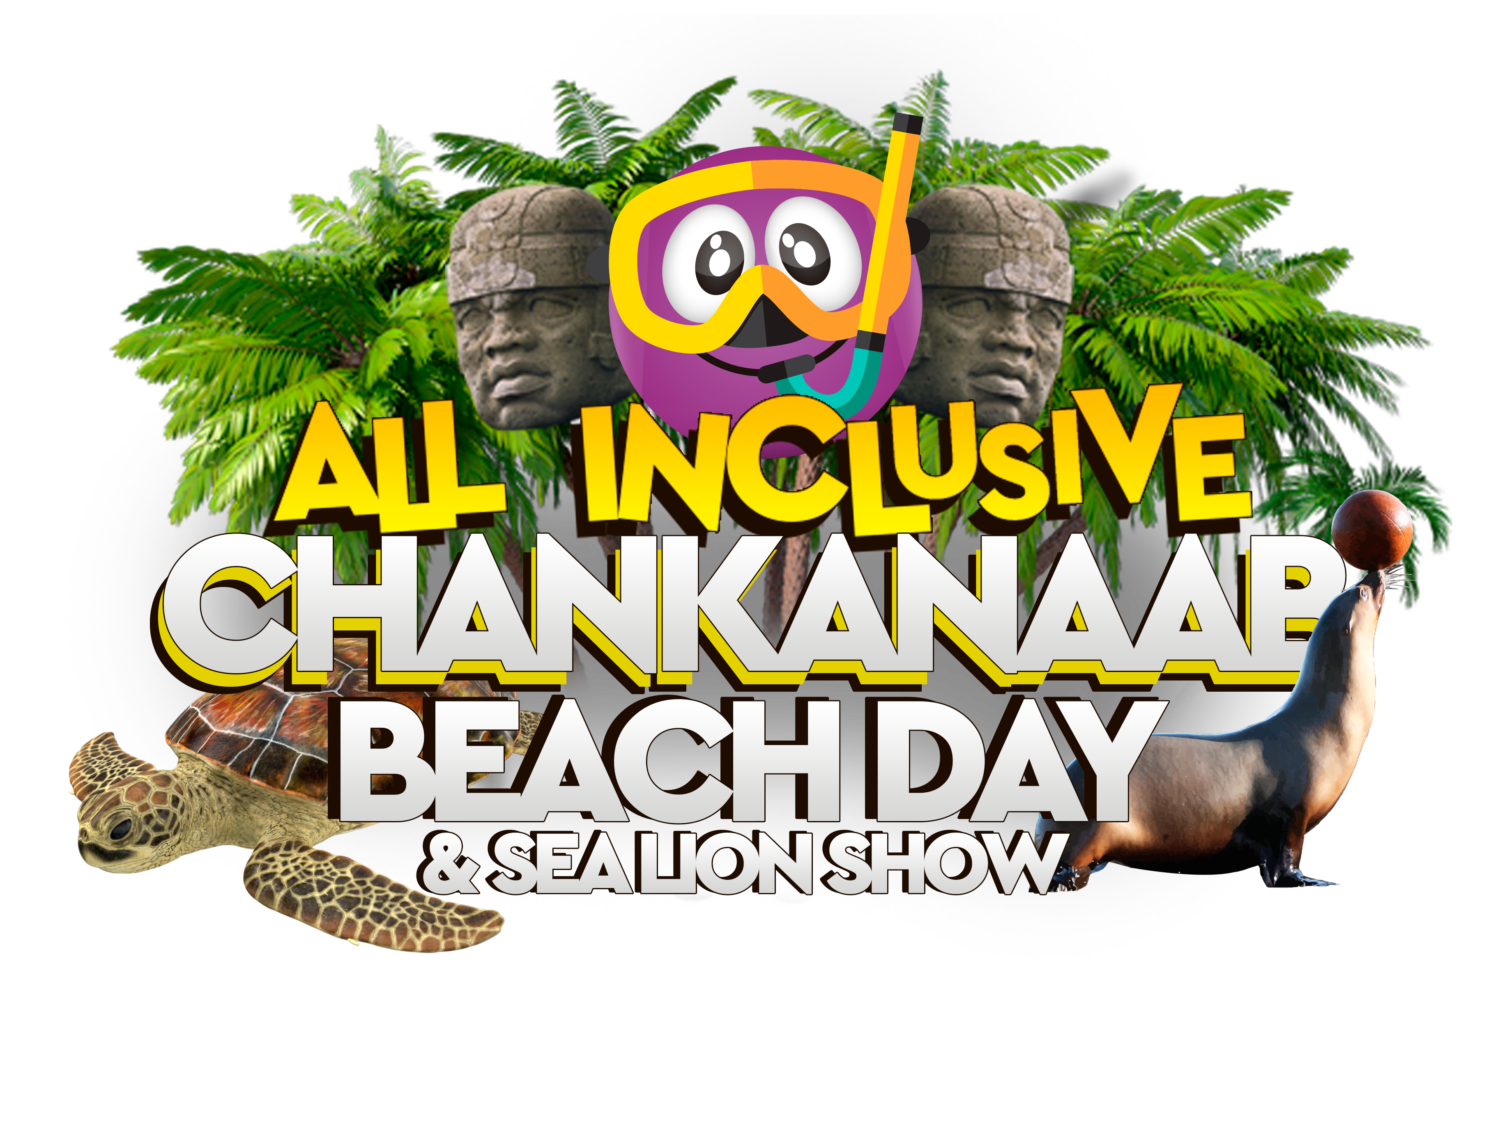 ALL INCLUSIVE CHANKANAAB BEACH DAY & SEA LION SHOW